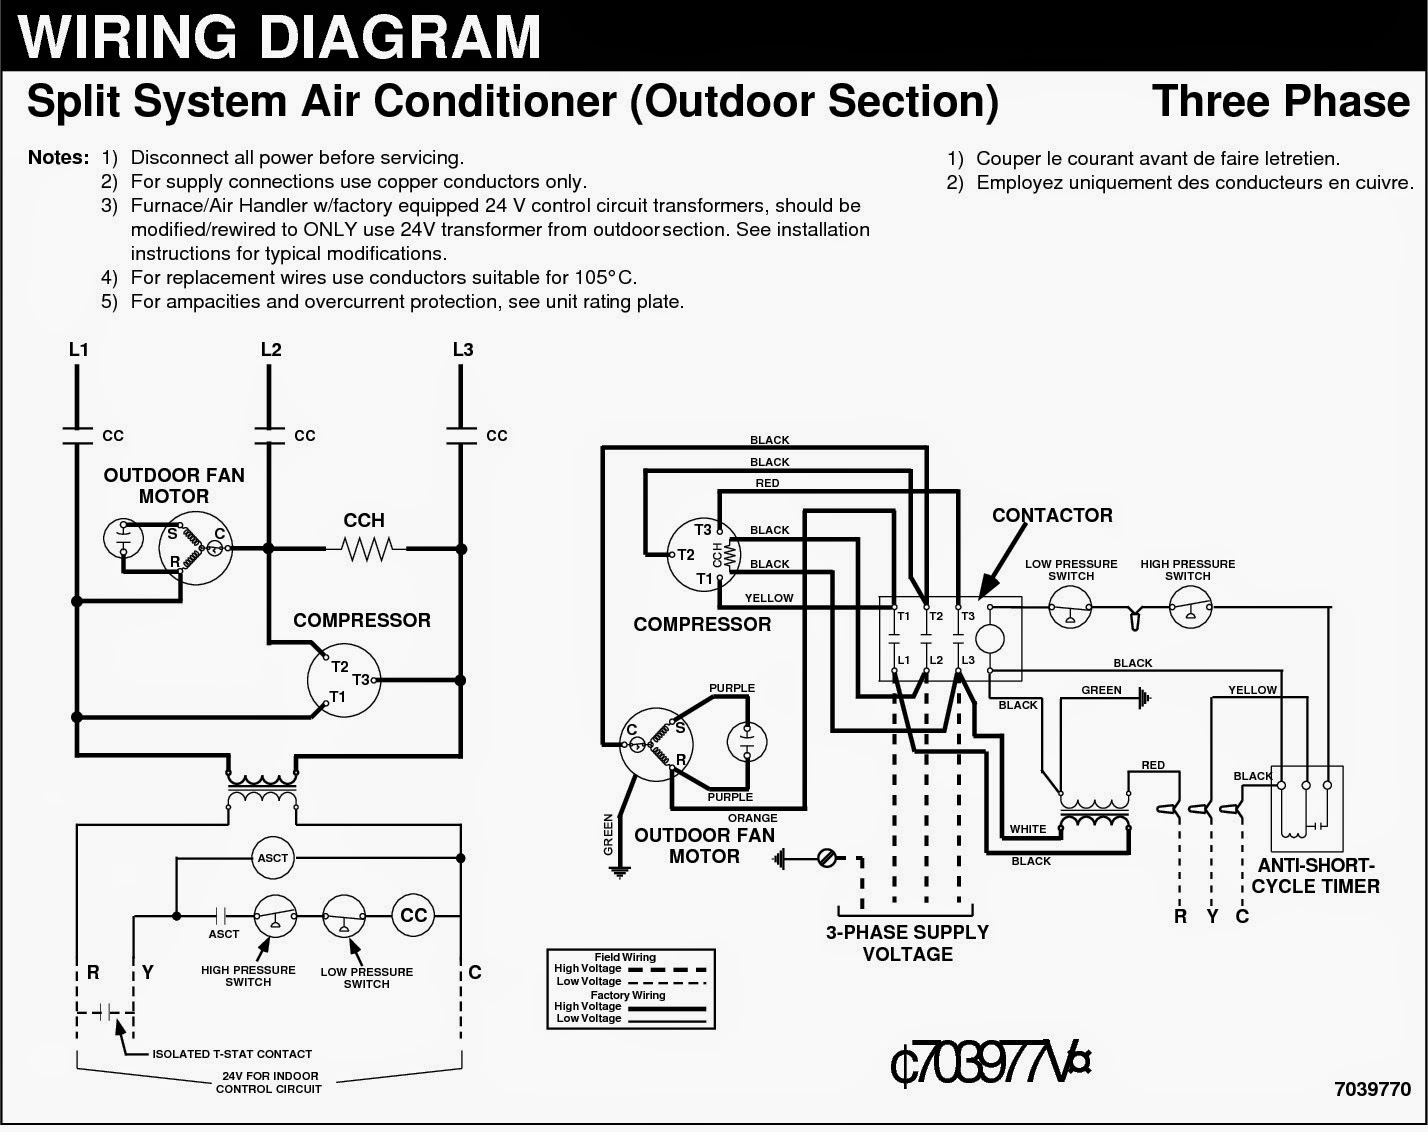 3+phase electrical wiring diagrams for air conditioning systems part two add a phase wiring diagram at eliteediting.co